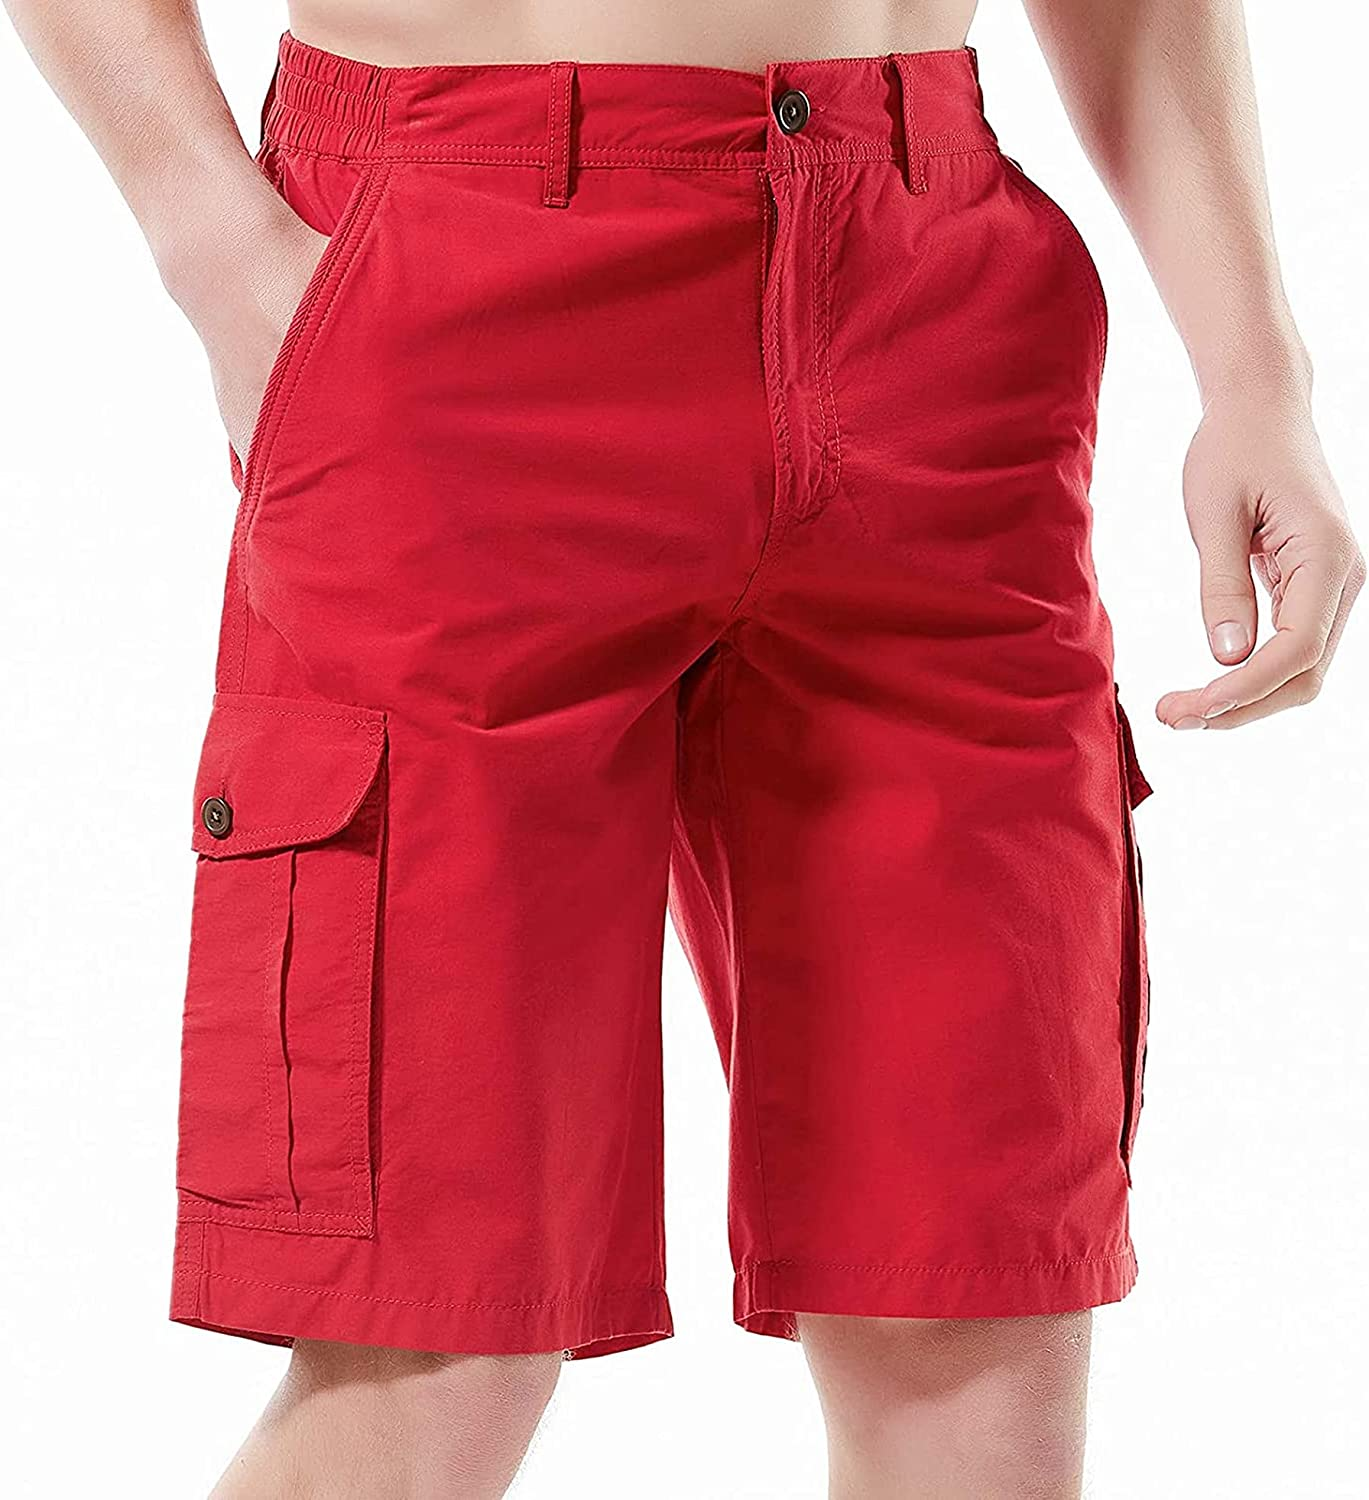 Love Handles Men's Lightweight Quick Dry Elastic Waistband Cargo Trousers Shorts Athletic with Pockets